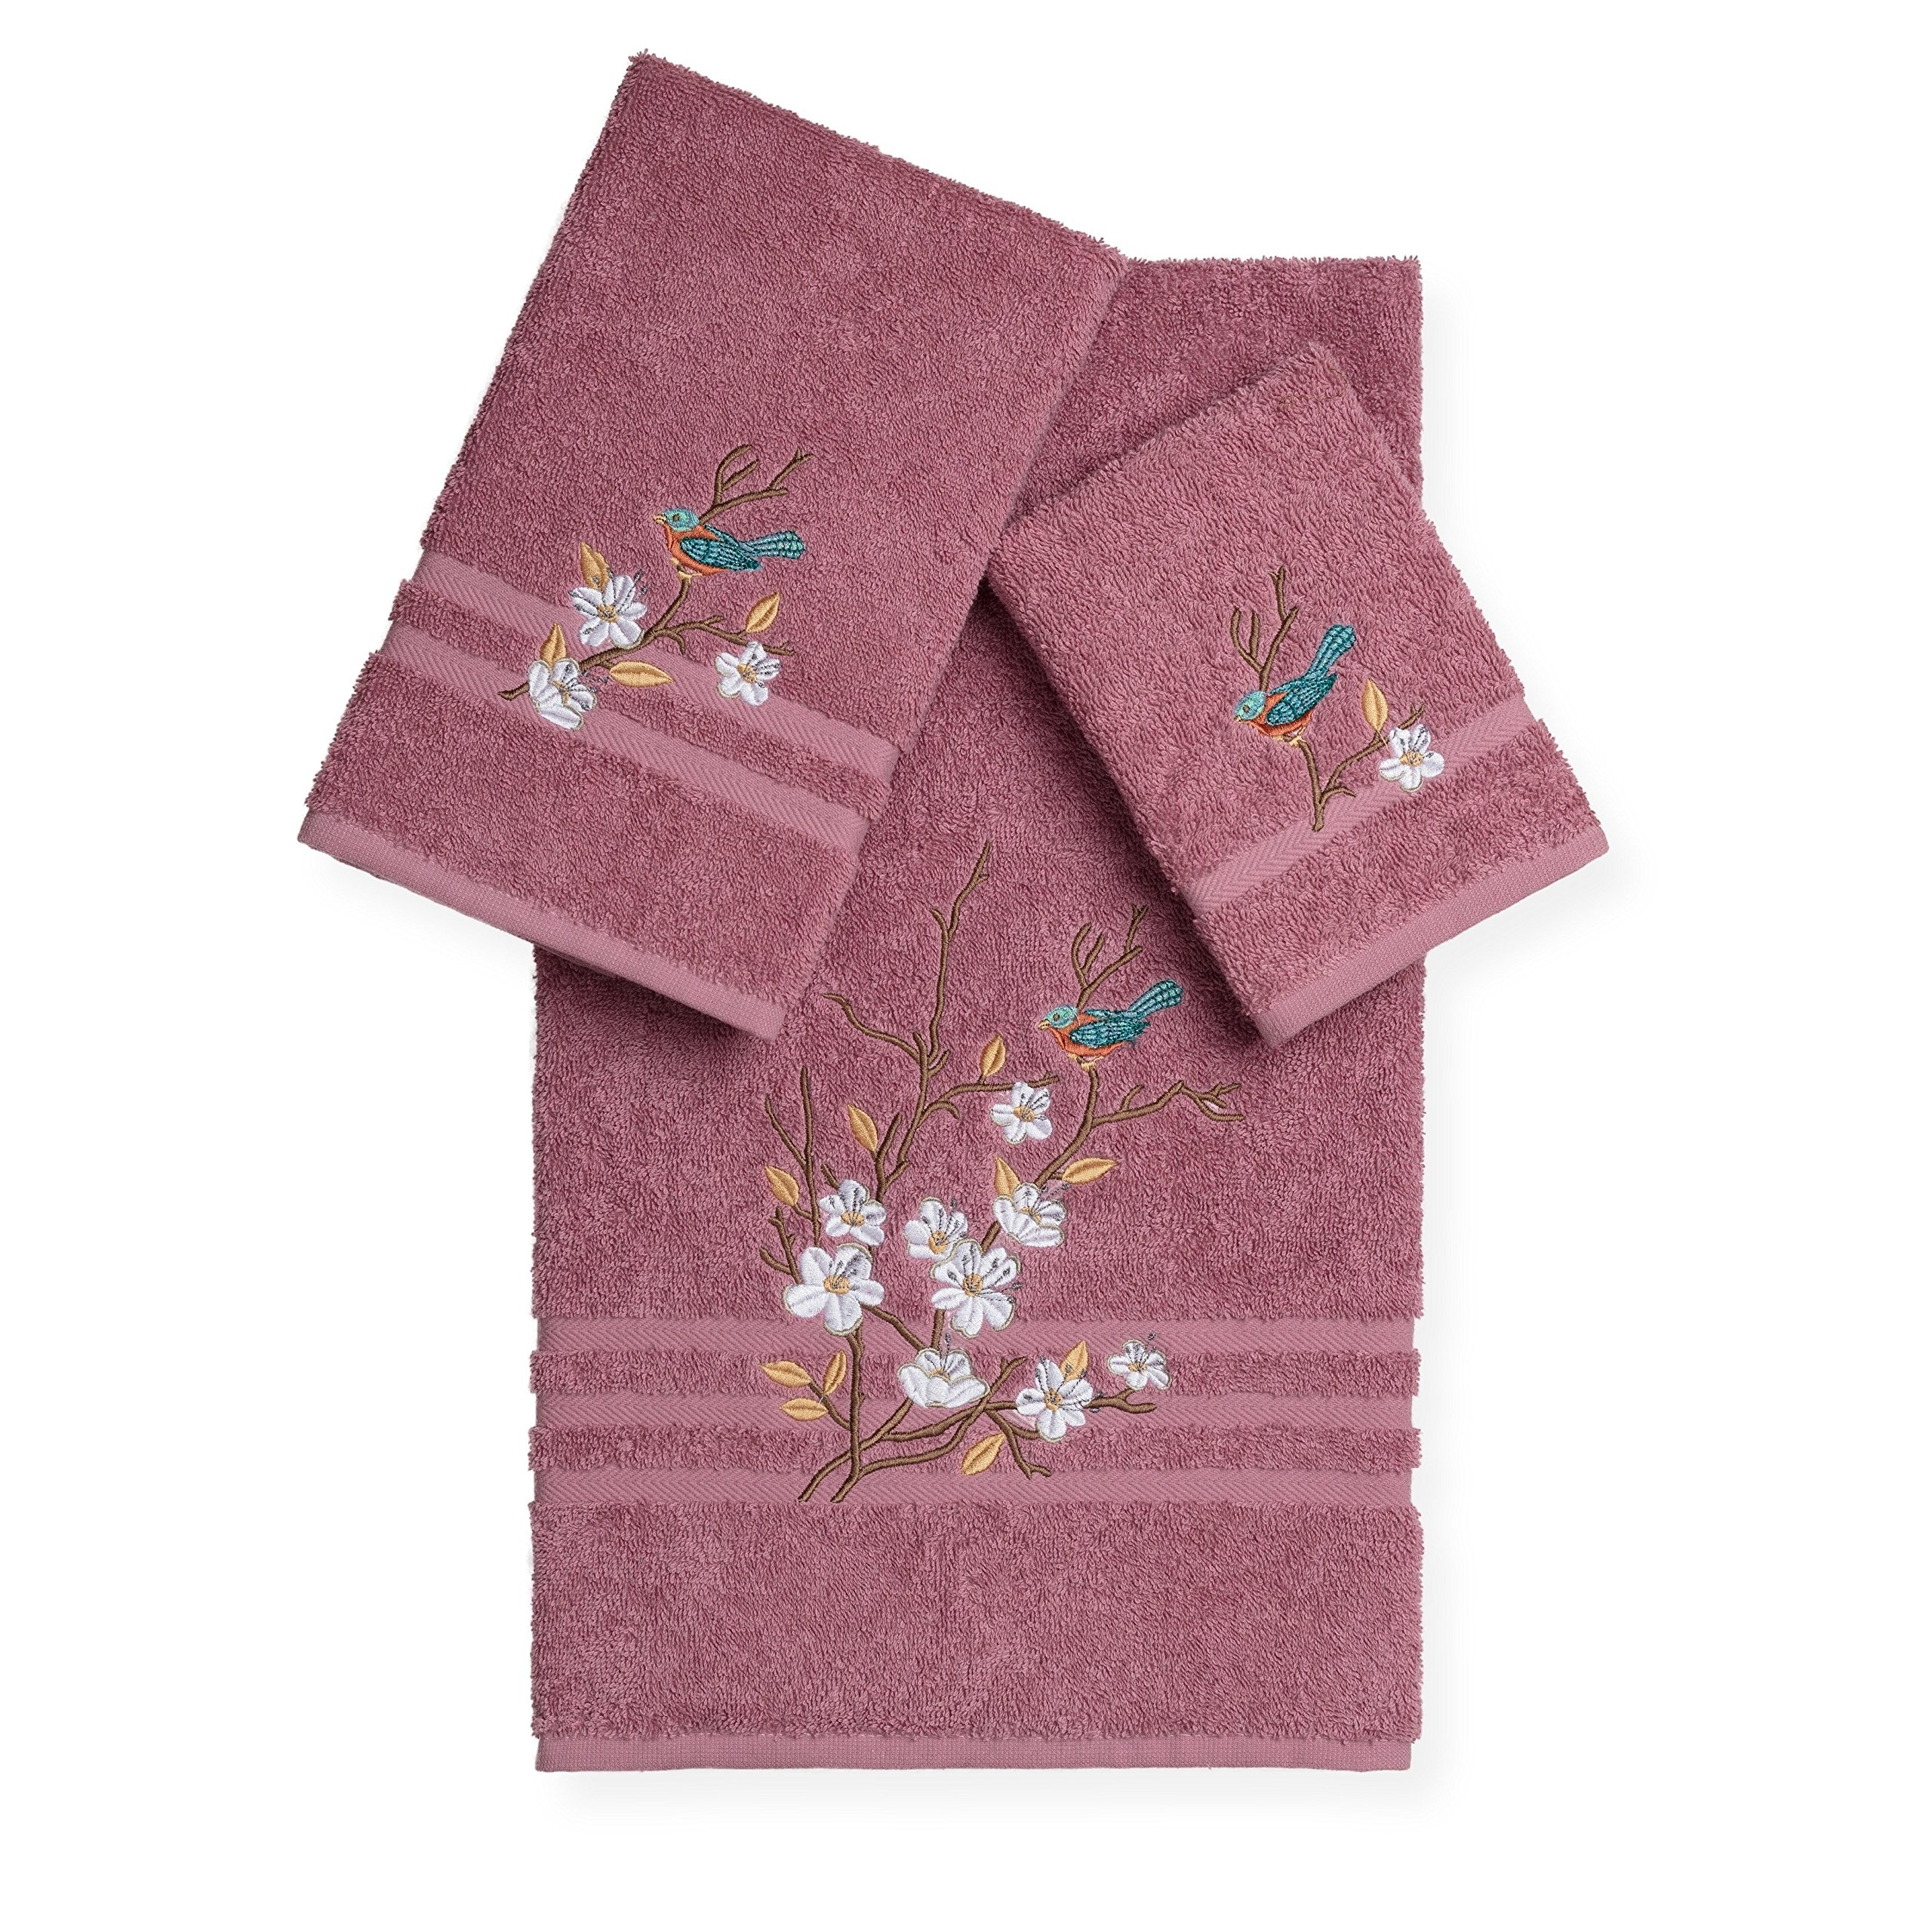 3 Piece Rose Blue Bird Flowers Applique Embroidered Towel Set With 27 X 54 Inches Bath Towel, Light Pink Gold Leaf Animal Floral Stripe Plush Dobby Woven Embellished Absorbent, Turkish Cotton